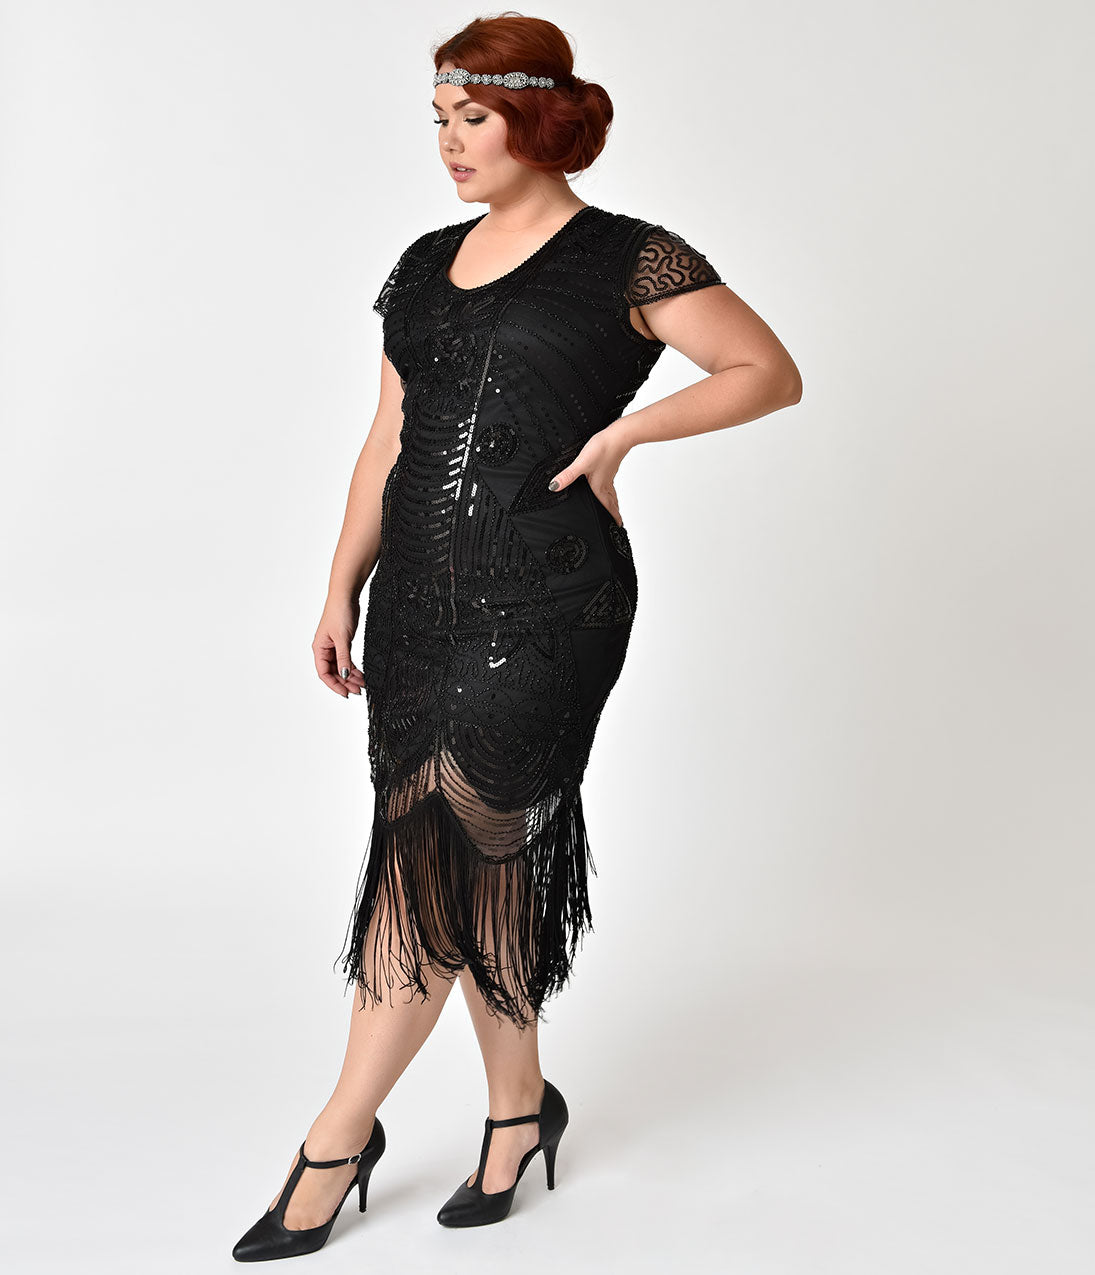 Swing Dance Shoes- Vintage, Lindy Hop, Tap, Ballroom Black Beaded Cap Sleeve Chantal Fringe Flapper Dress $74.00 AT vintagedancer.com